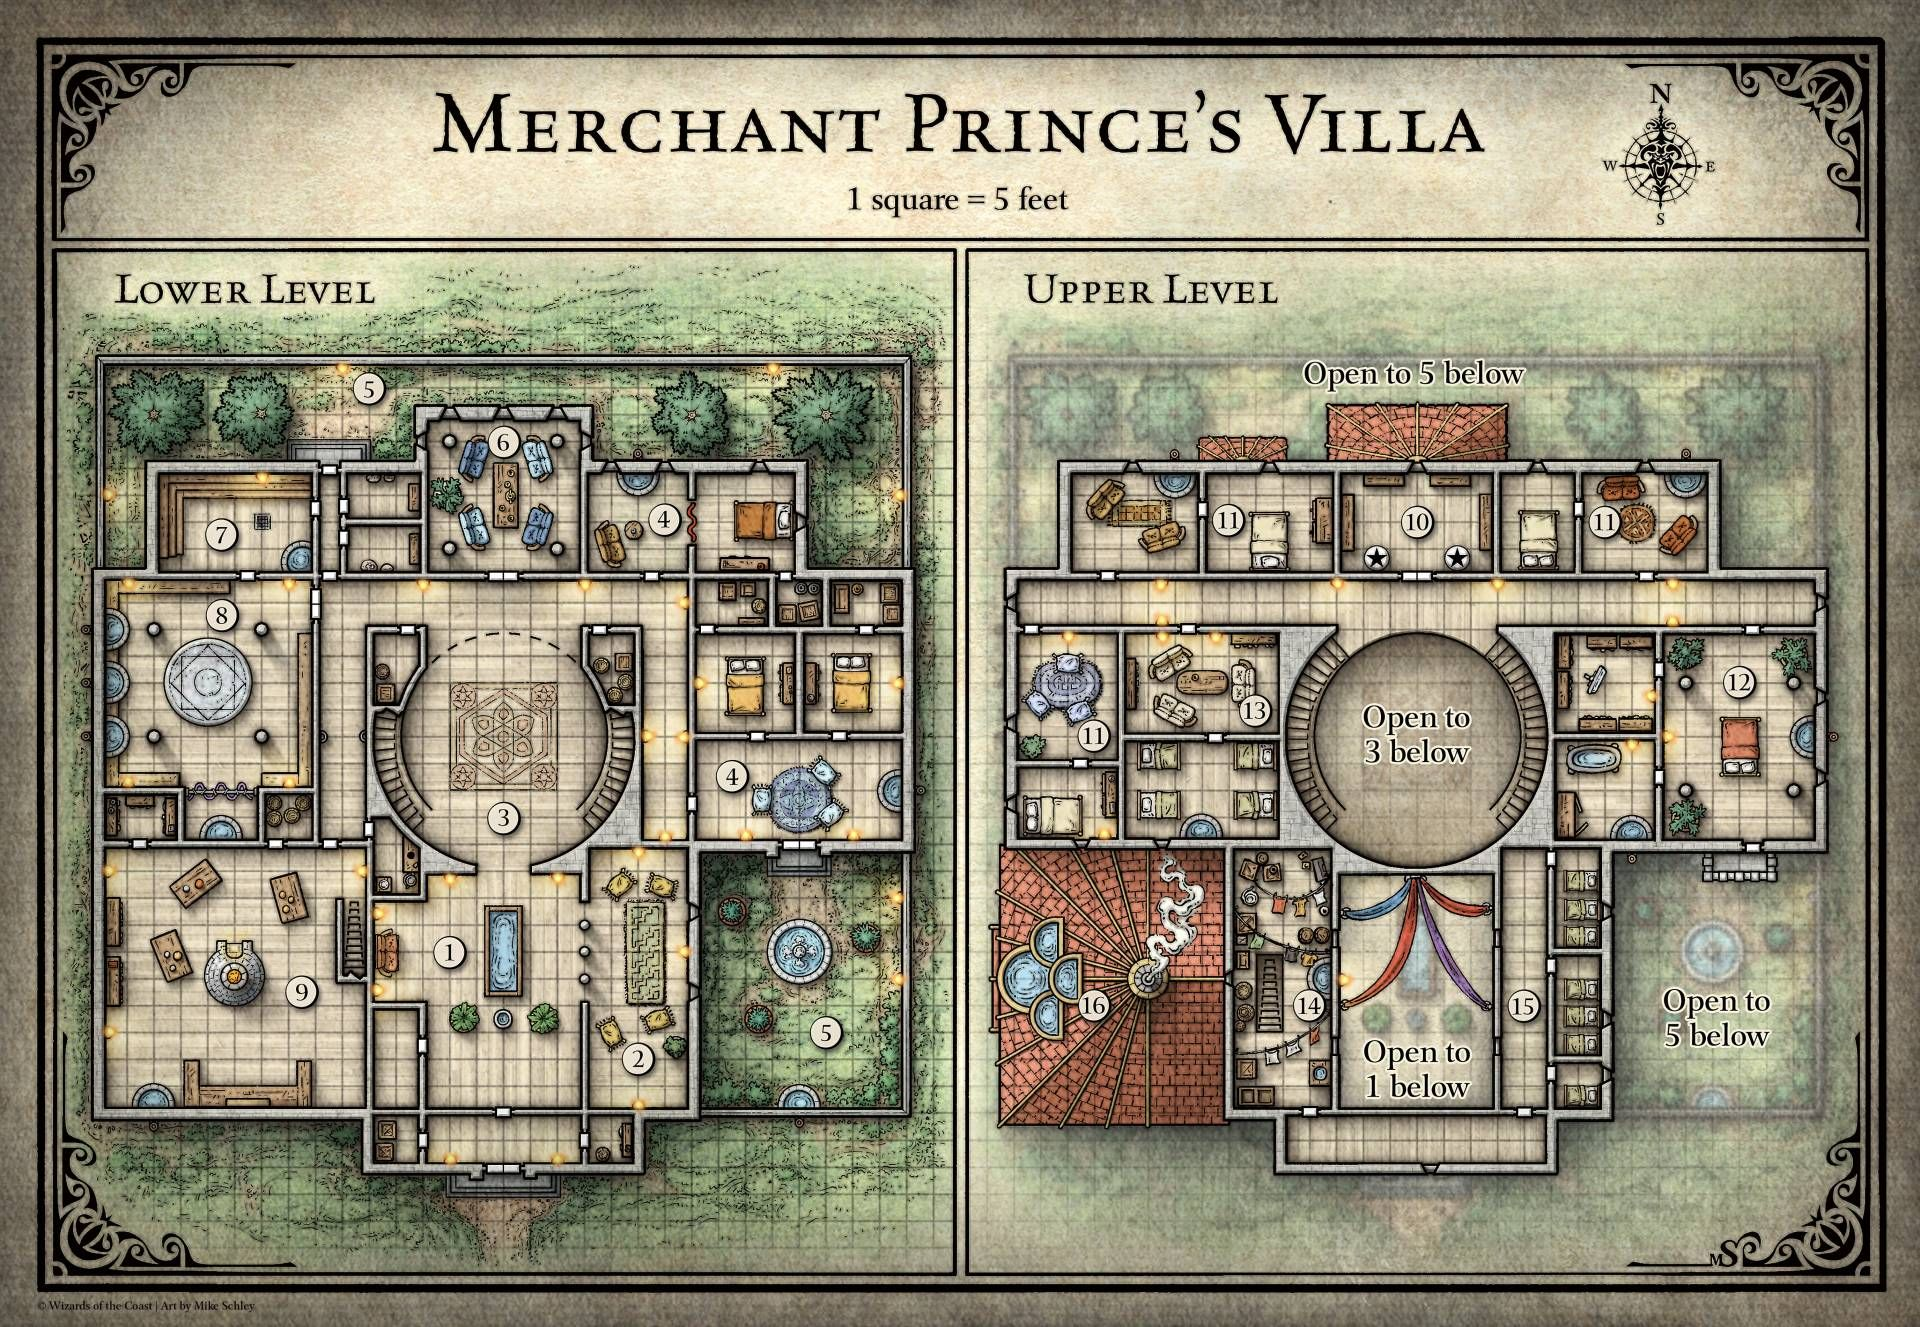 d&d mansion map - Google Search | Fantasy map, Pathfinder ... on